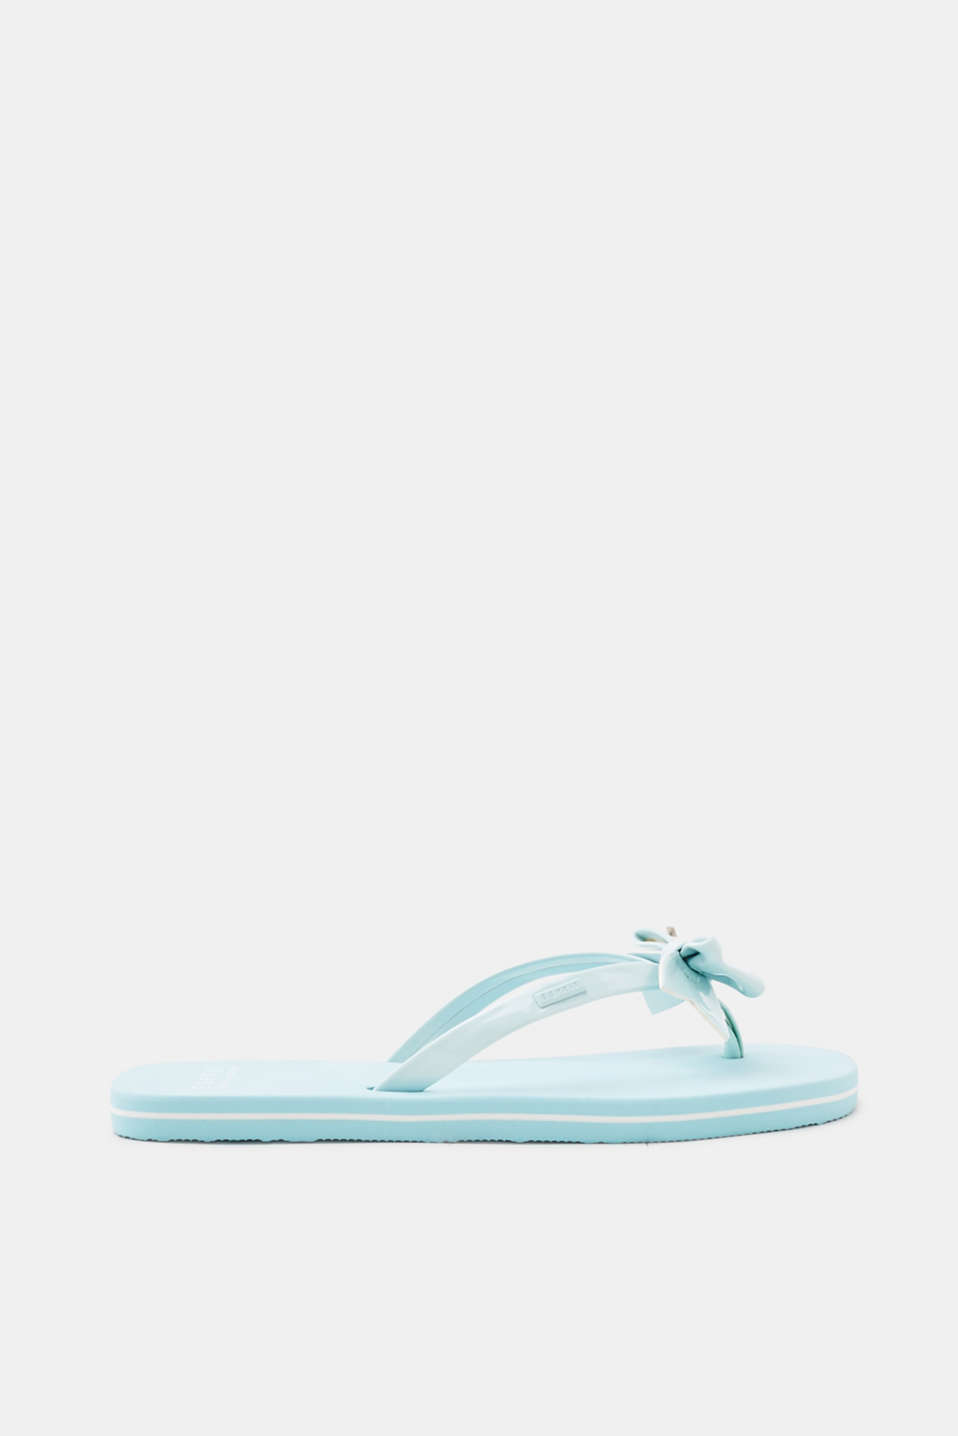 Esprit - Toe-post sandals with patent straps and a bow